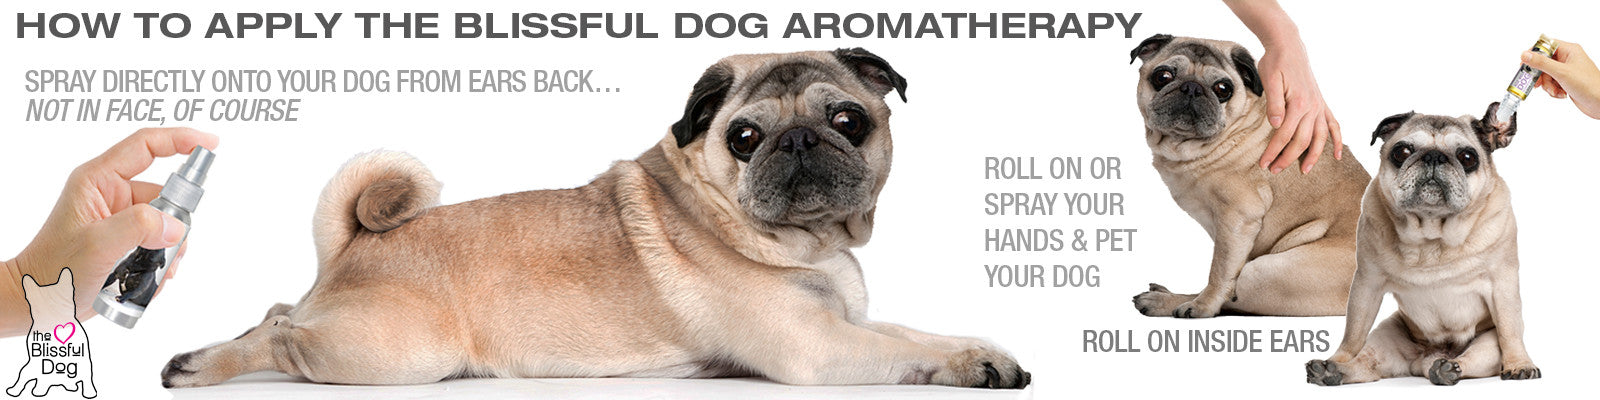 apply relax dog aromatherapy pug